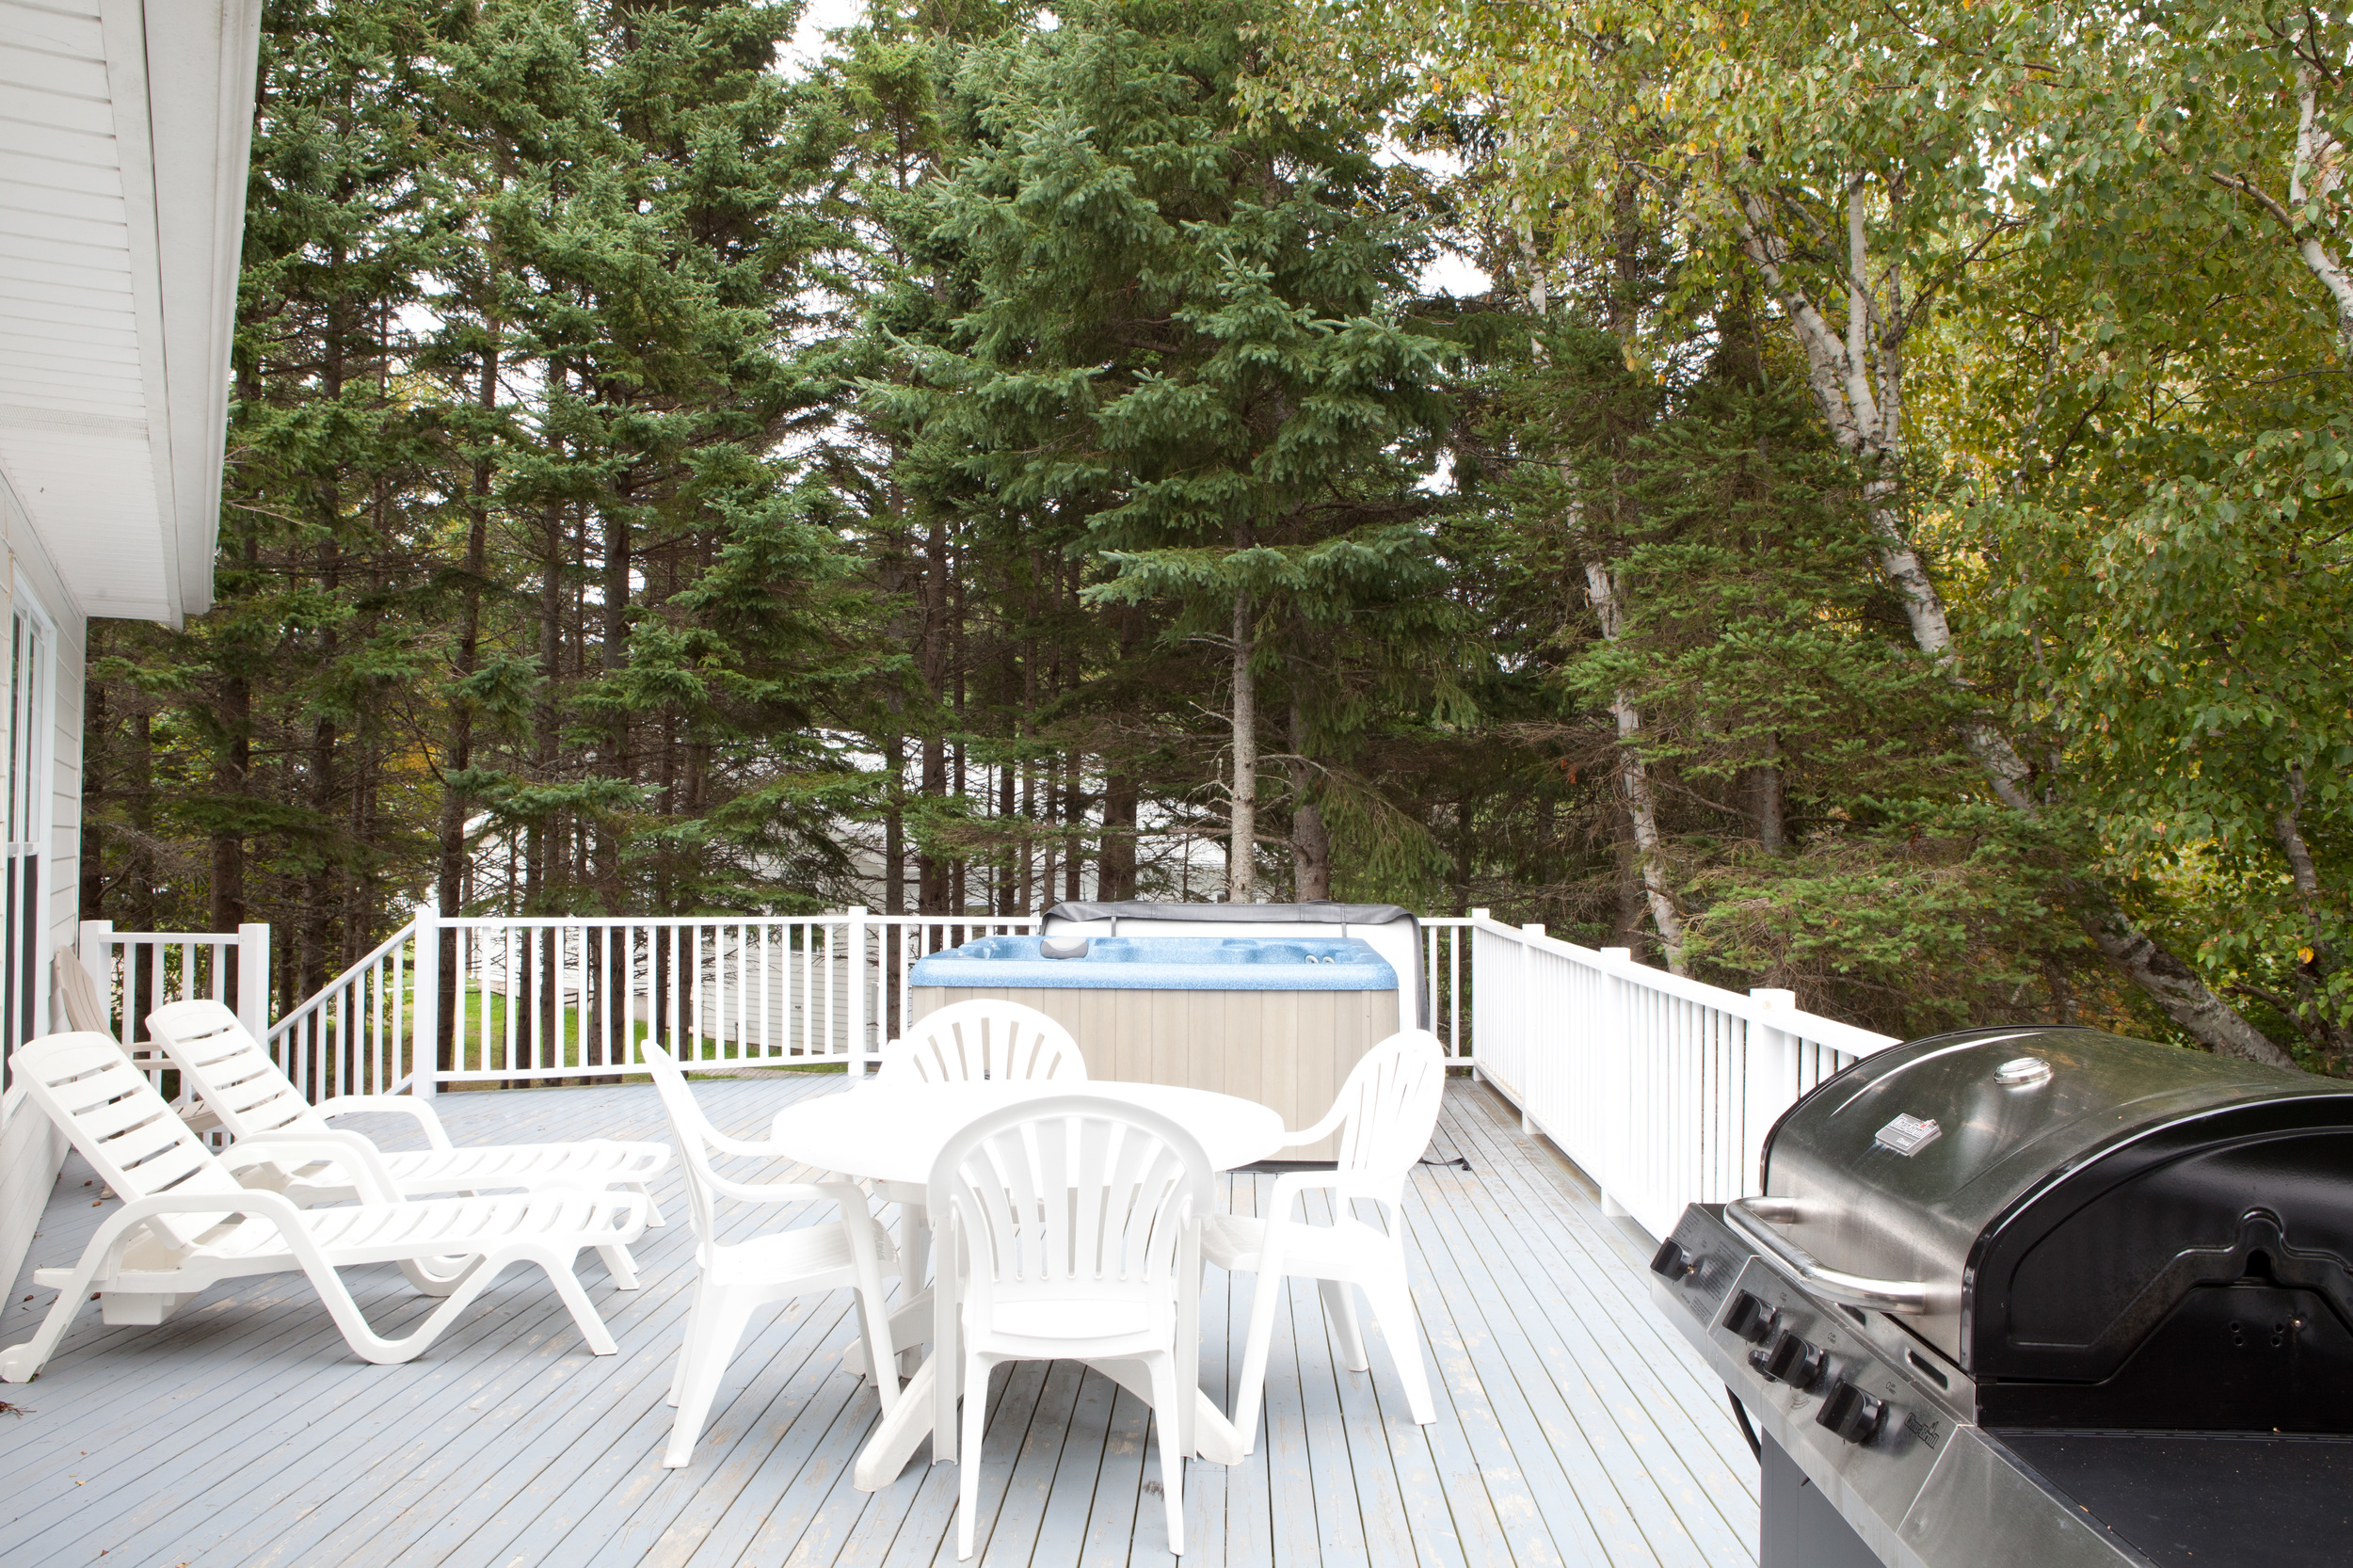 Deluxe Cottage Deck and optional Hot Tub